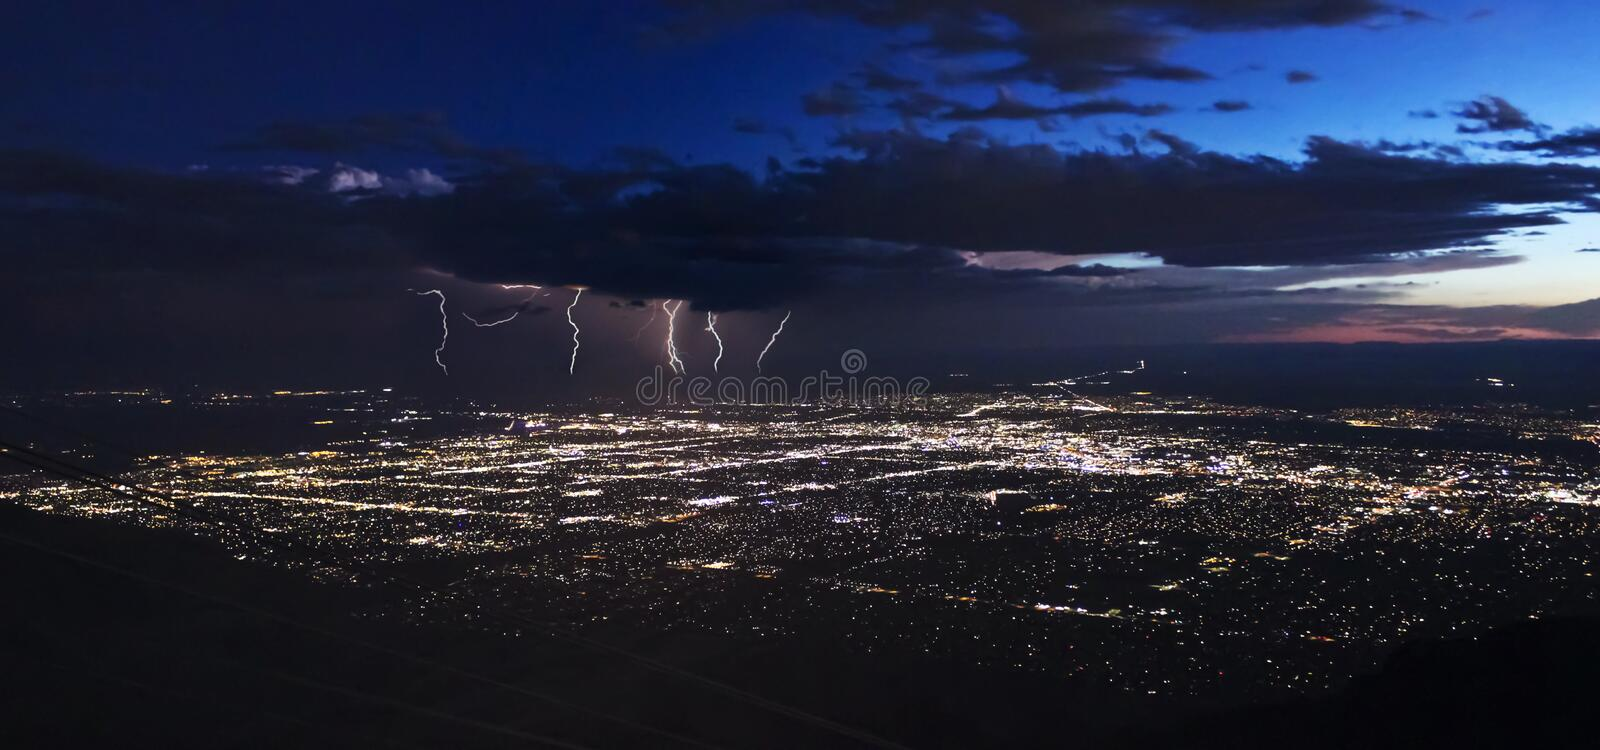 A Thunderstorm After Dusk Over Albuquerque, New Mexico royalty free stock photography